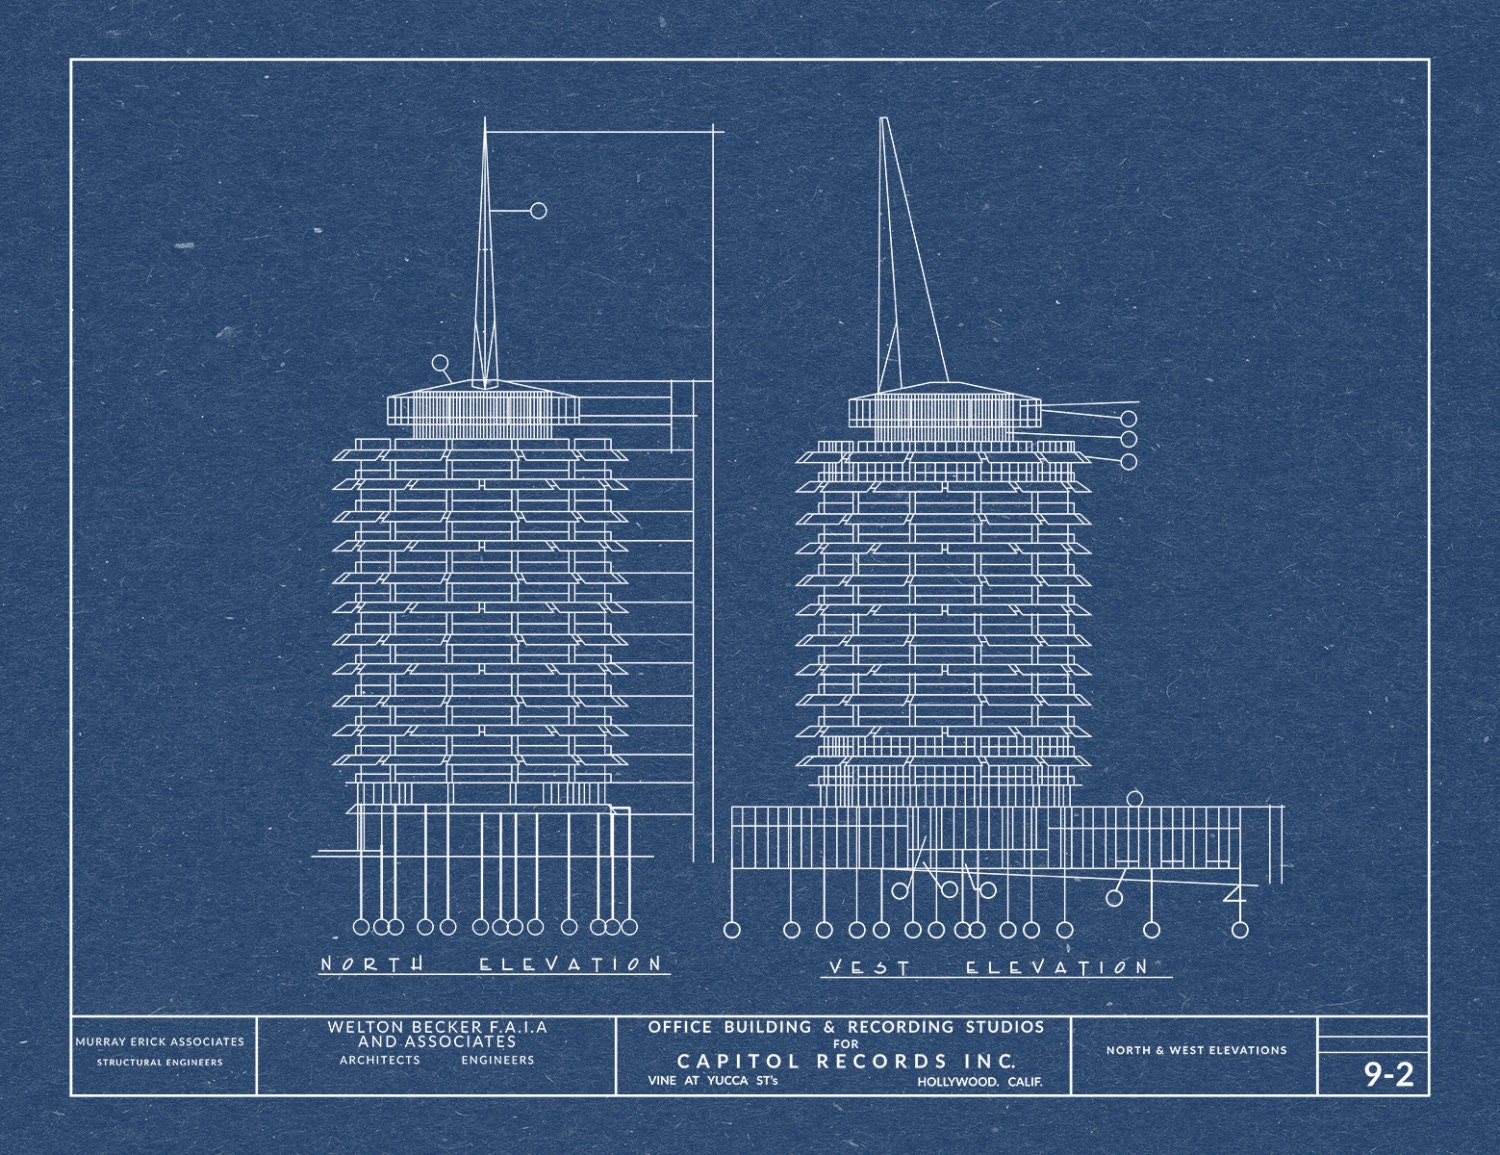 Print of vintage capitol records building blueprint on your choice print of vintage capitol records building blueprint on your choice of photo paper matter paper or stretched canvas malvernweather Choice Image